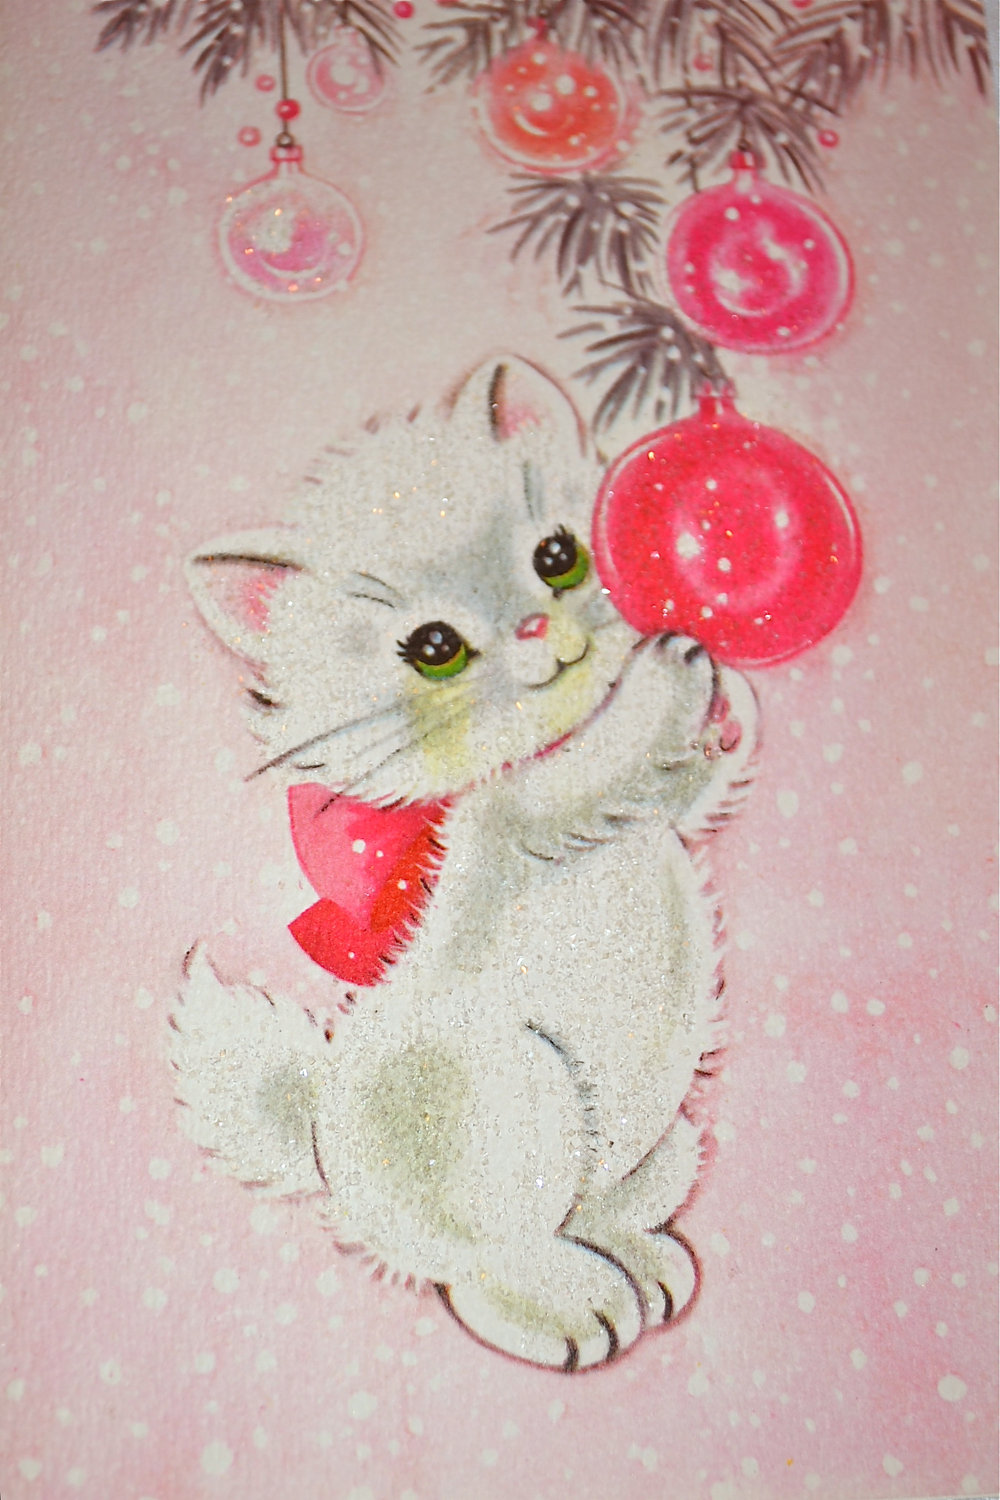 Christmas kitten card, photo by Etsy seller pumpkintruck